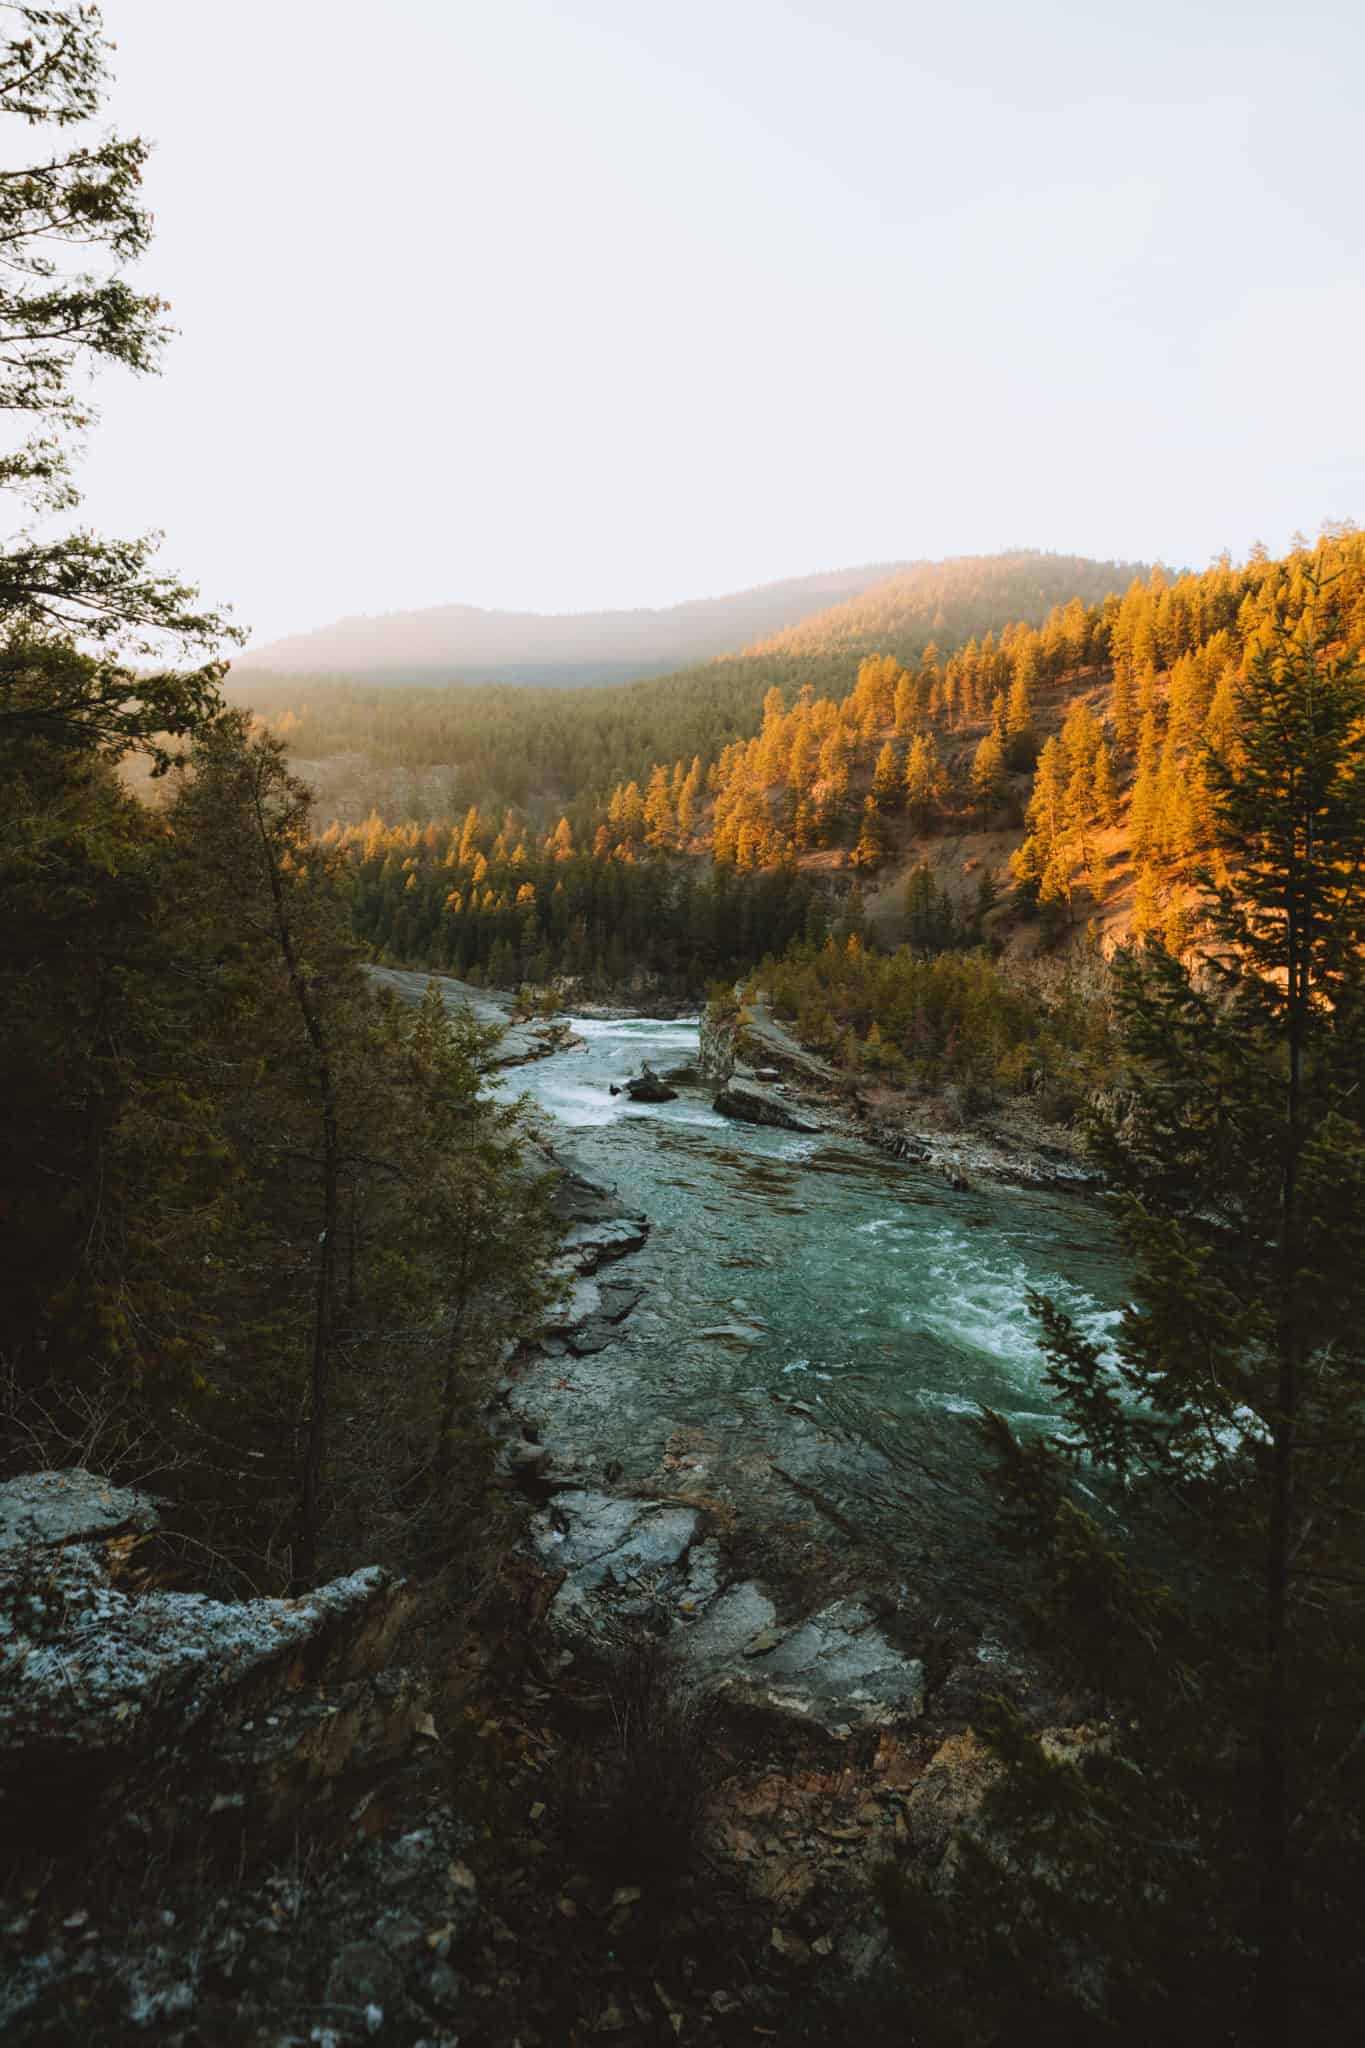 View of Kootenai River from Kootenai Falls Swinging Bridge - TheMandagies.com